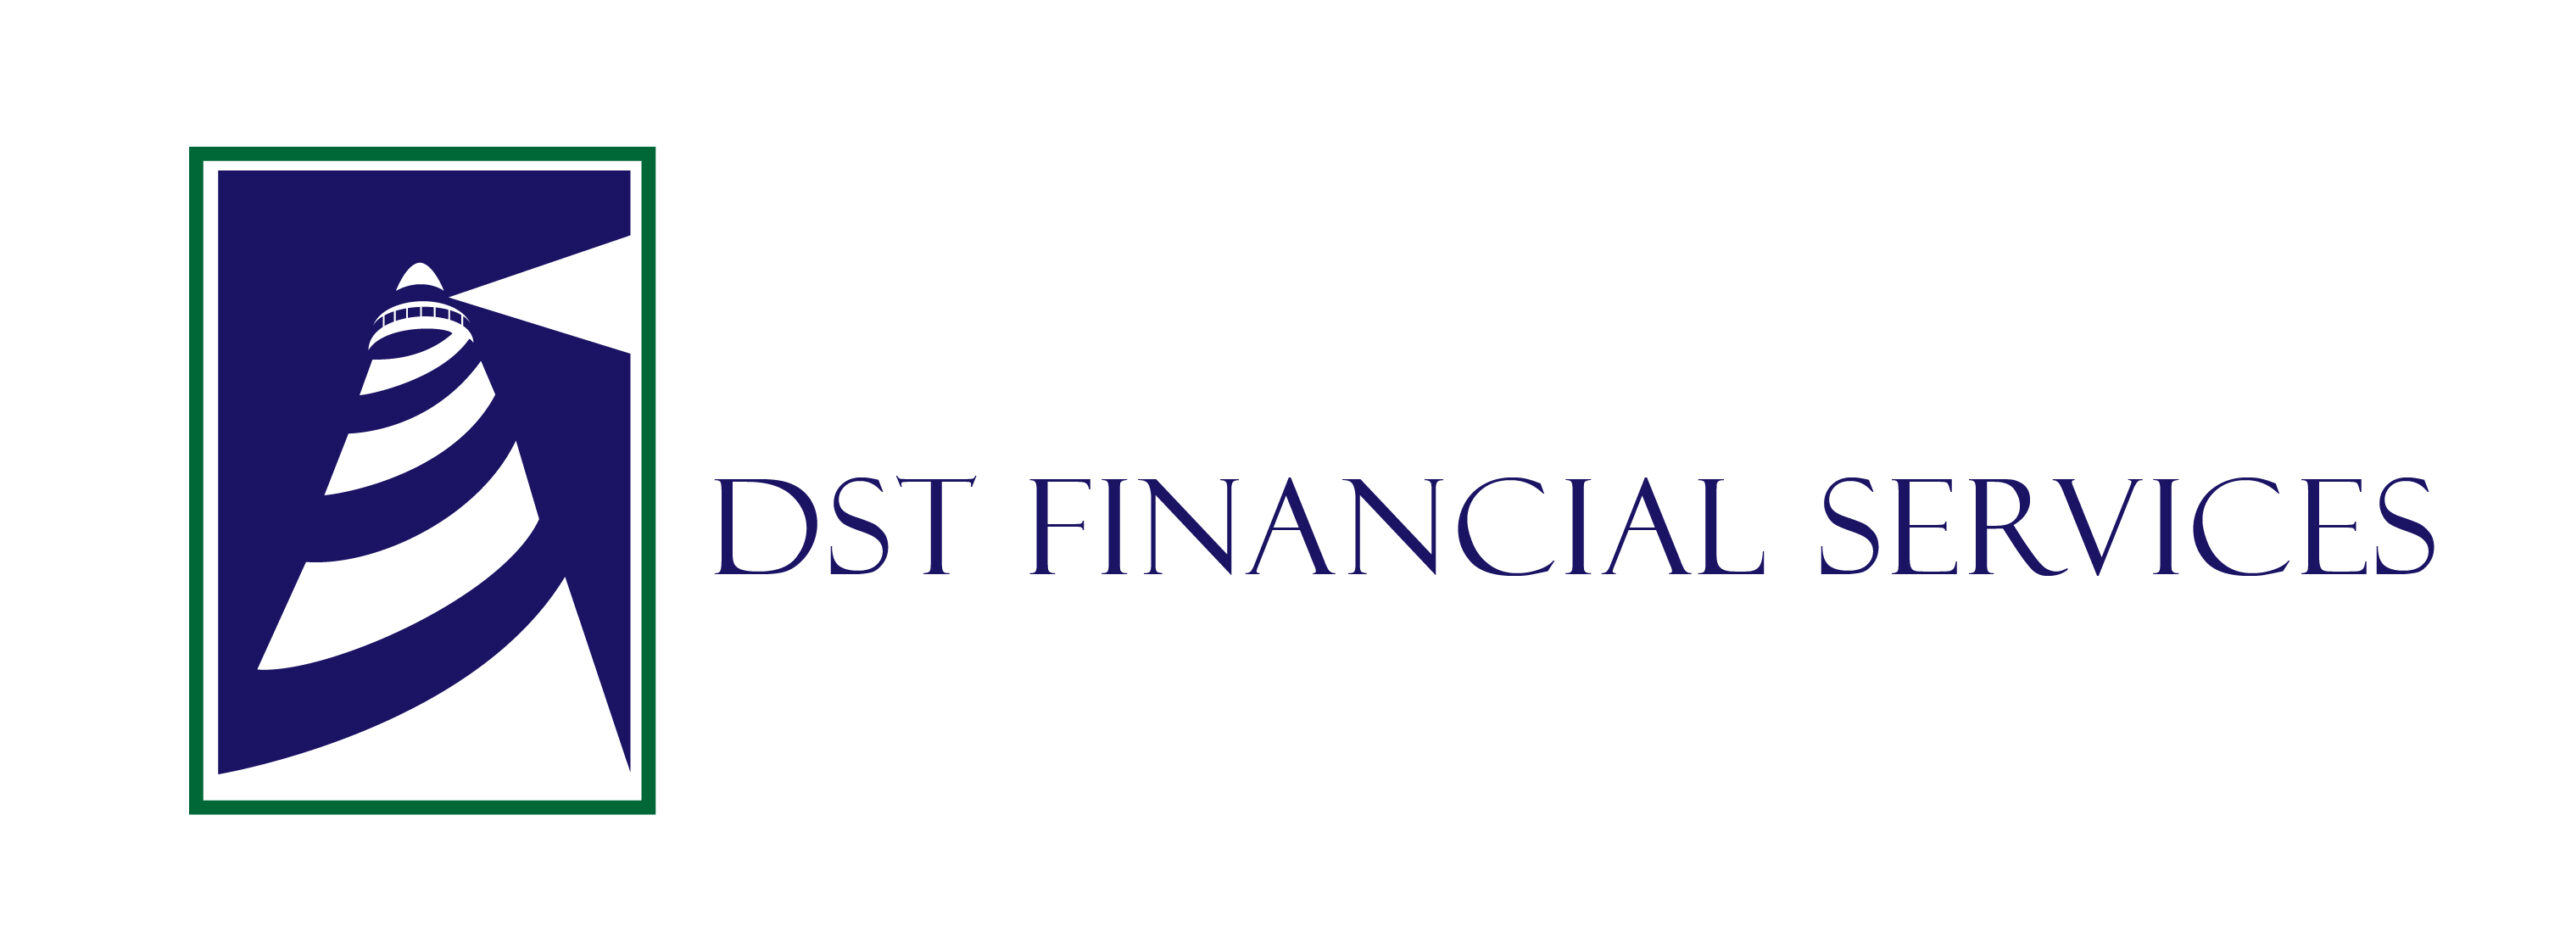 DST Financial Services